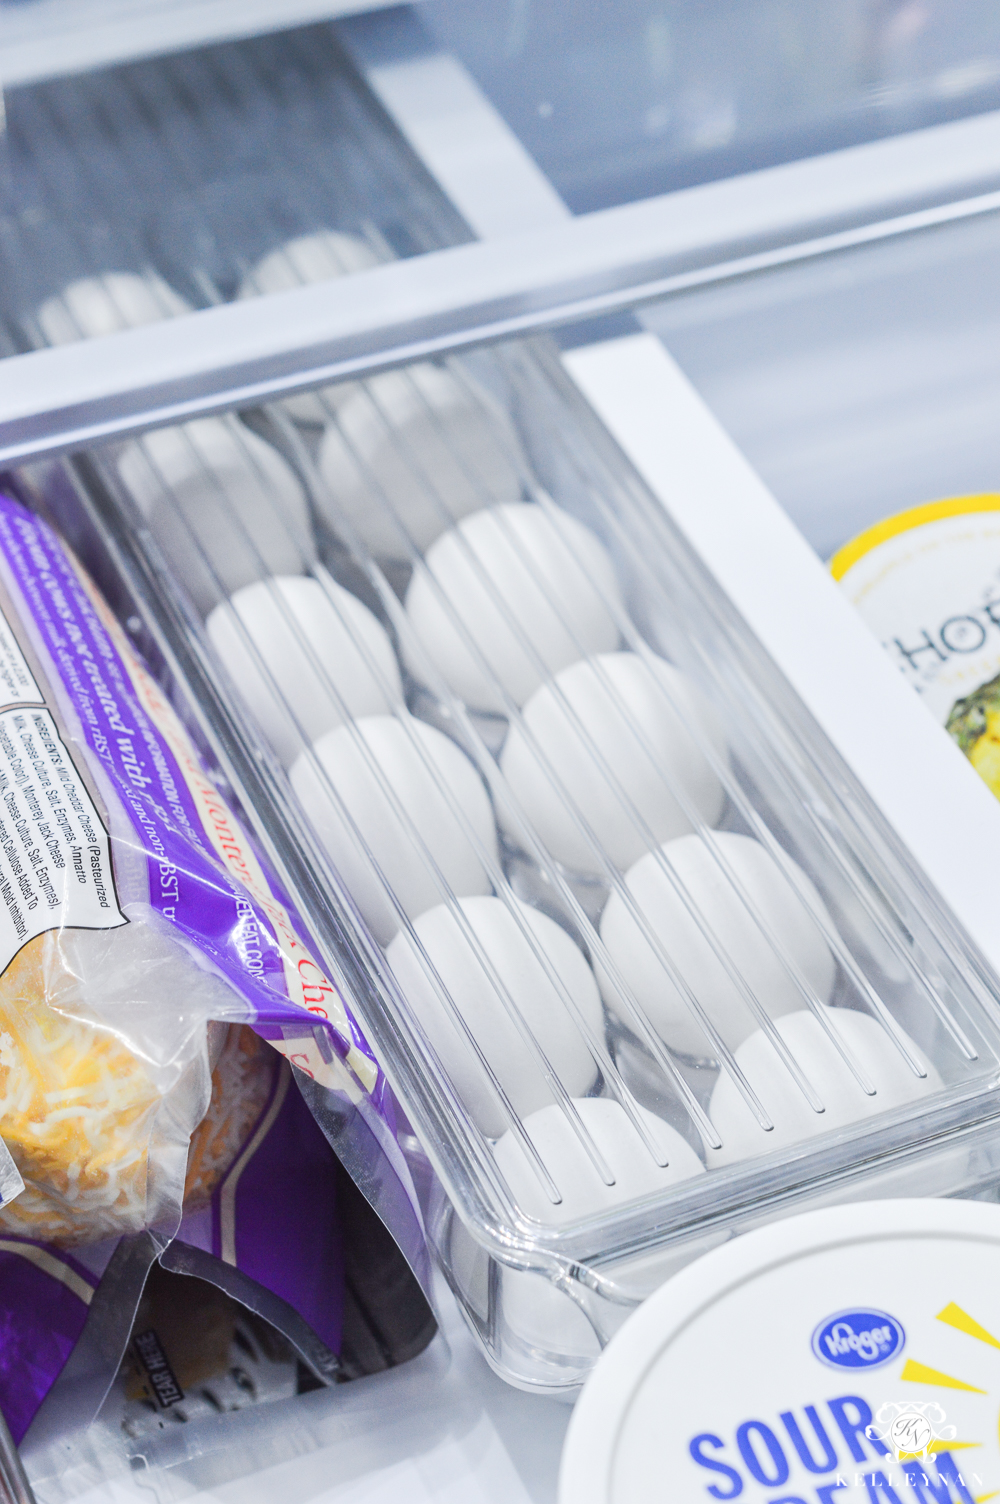 Refrigerator Organization and Best Ways to Organize the Fridge- plastic egg carton